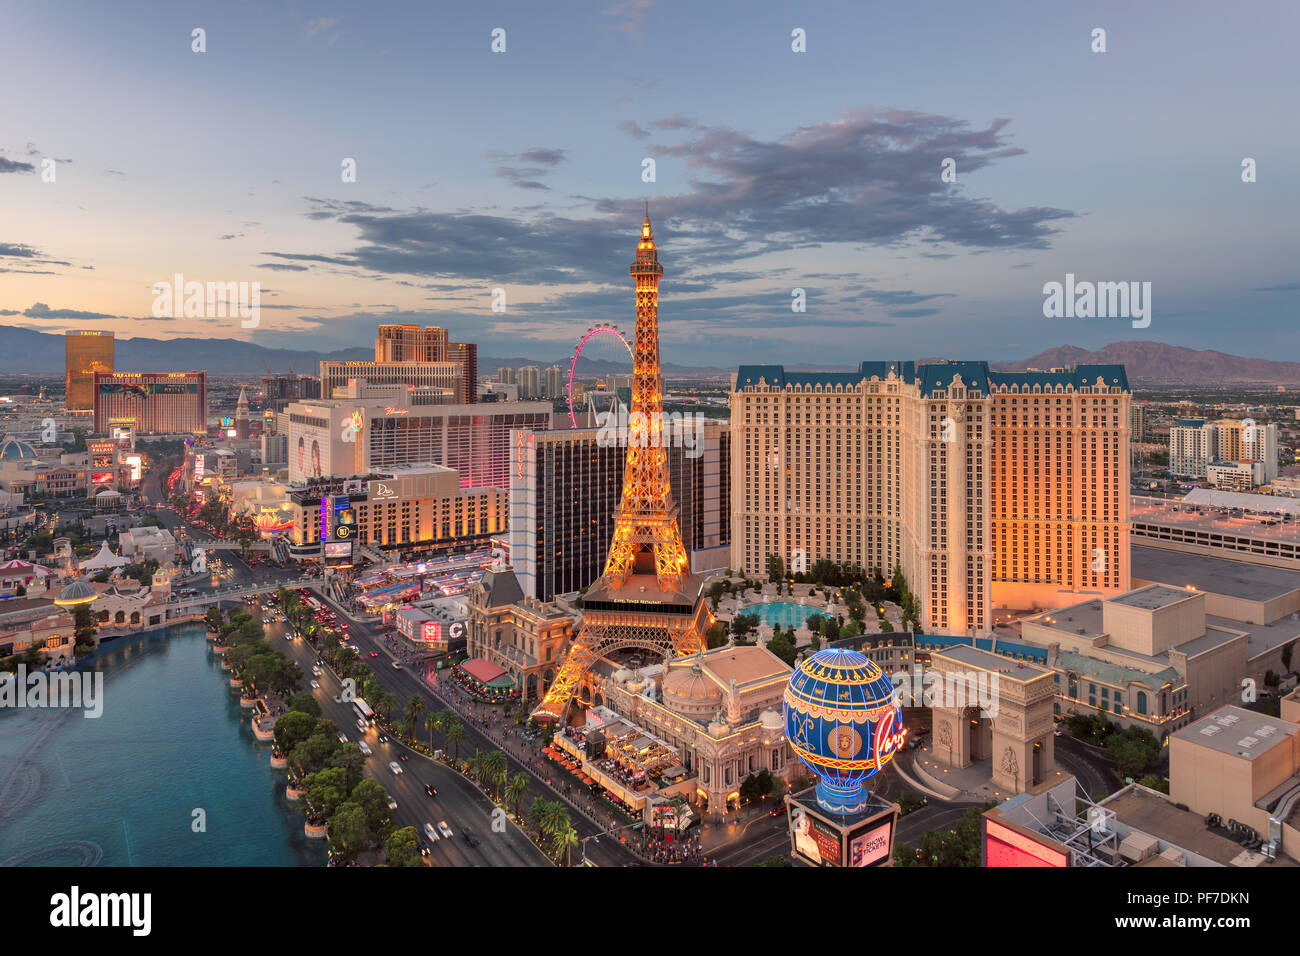 Las Vegas Strip skyline at sunset - Stock Image